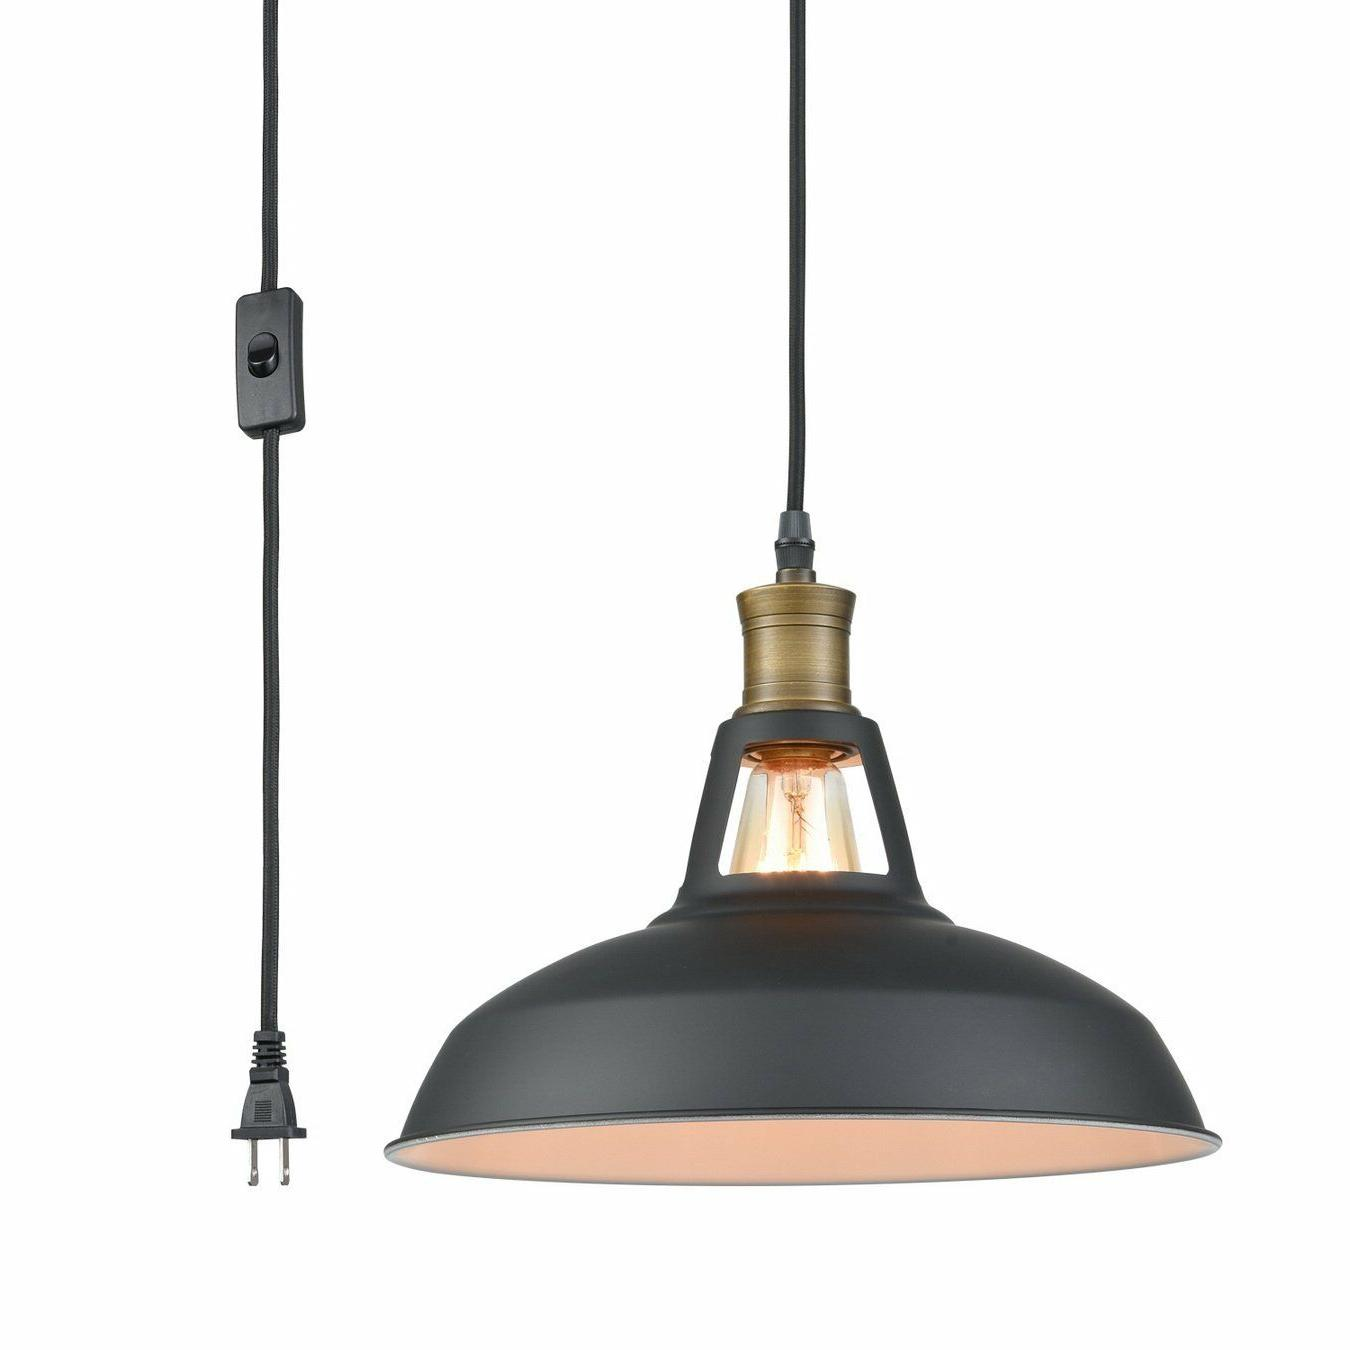 industrial plug pendant light